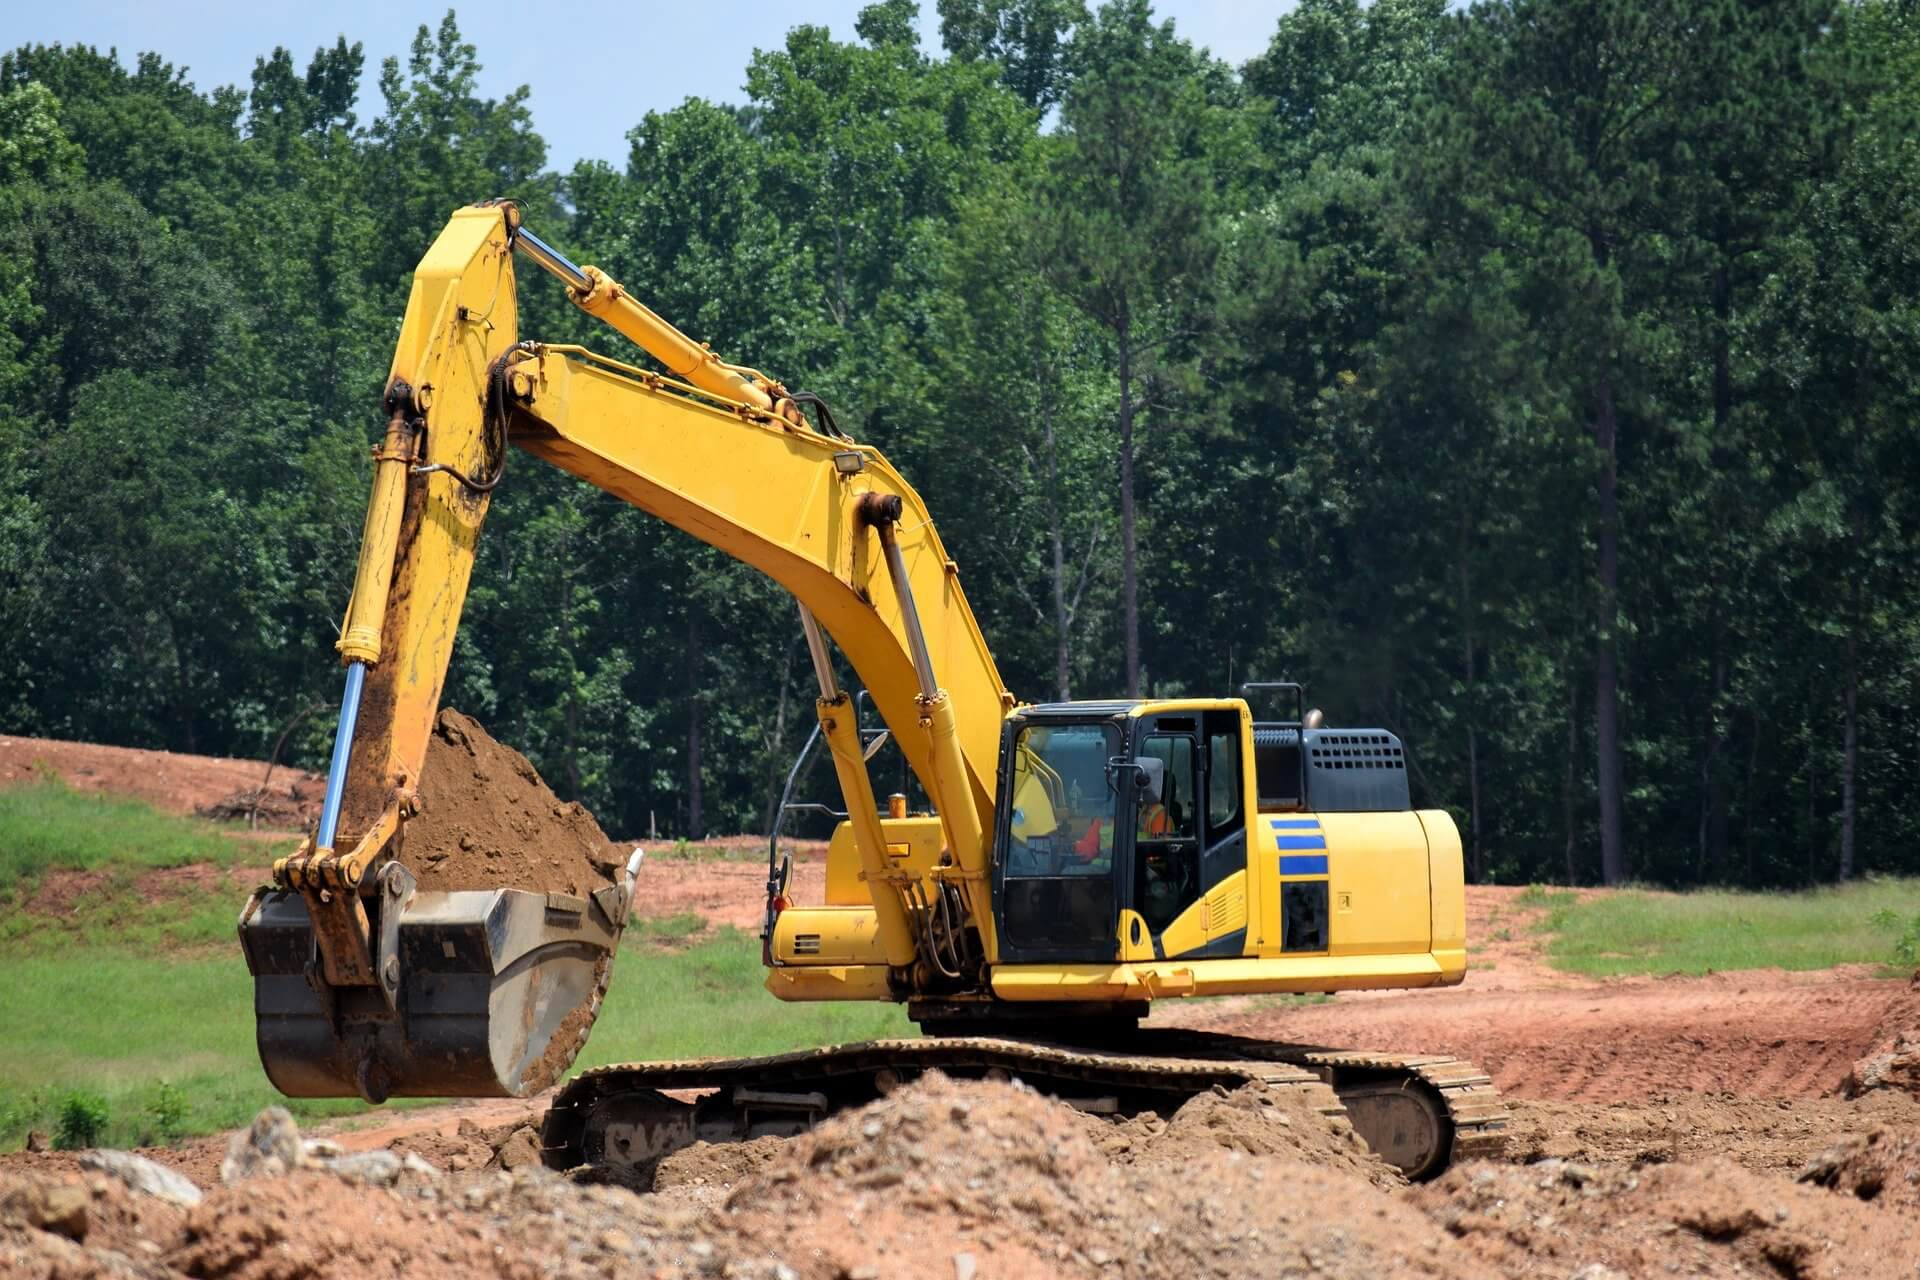 Stock photo of a construction site with a cat excavator.